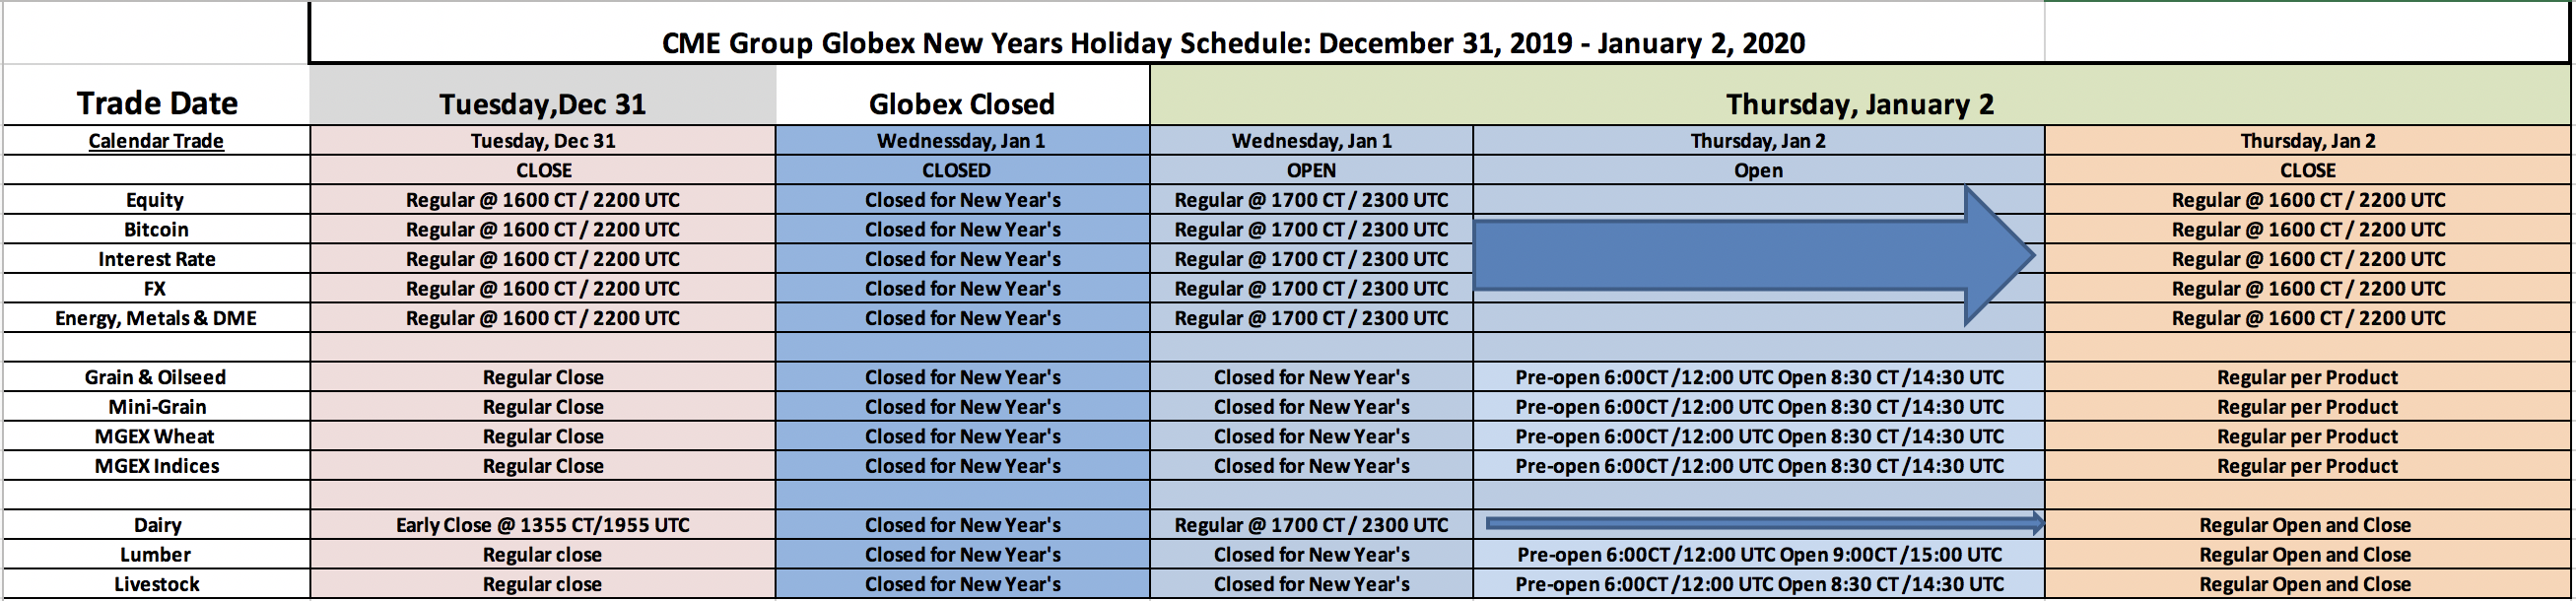 New Year - Holiday Trading Schedule - CME - 2019-2020